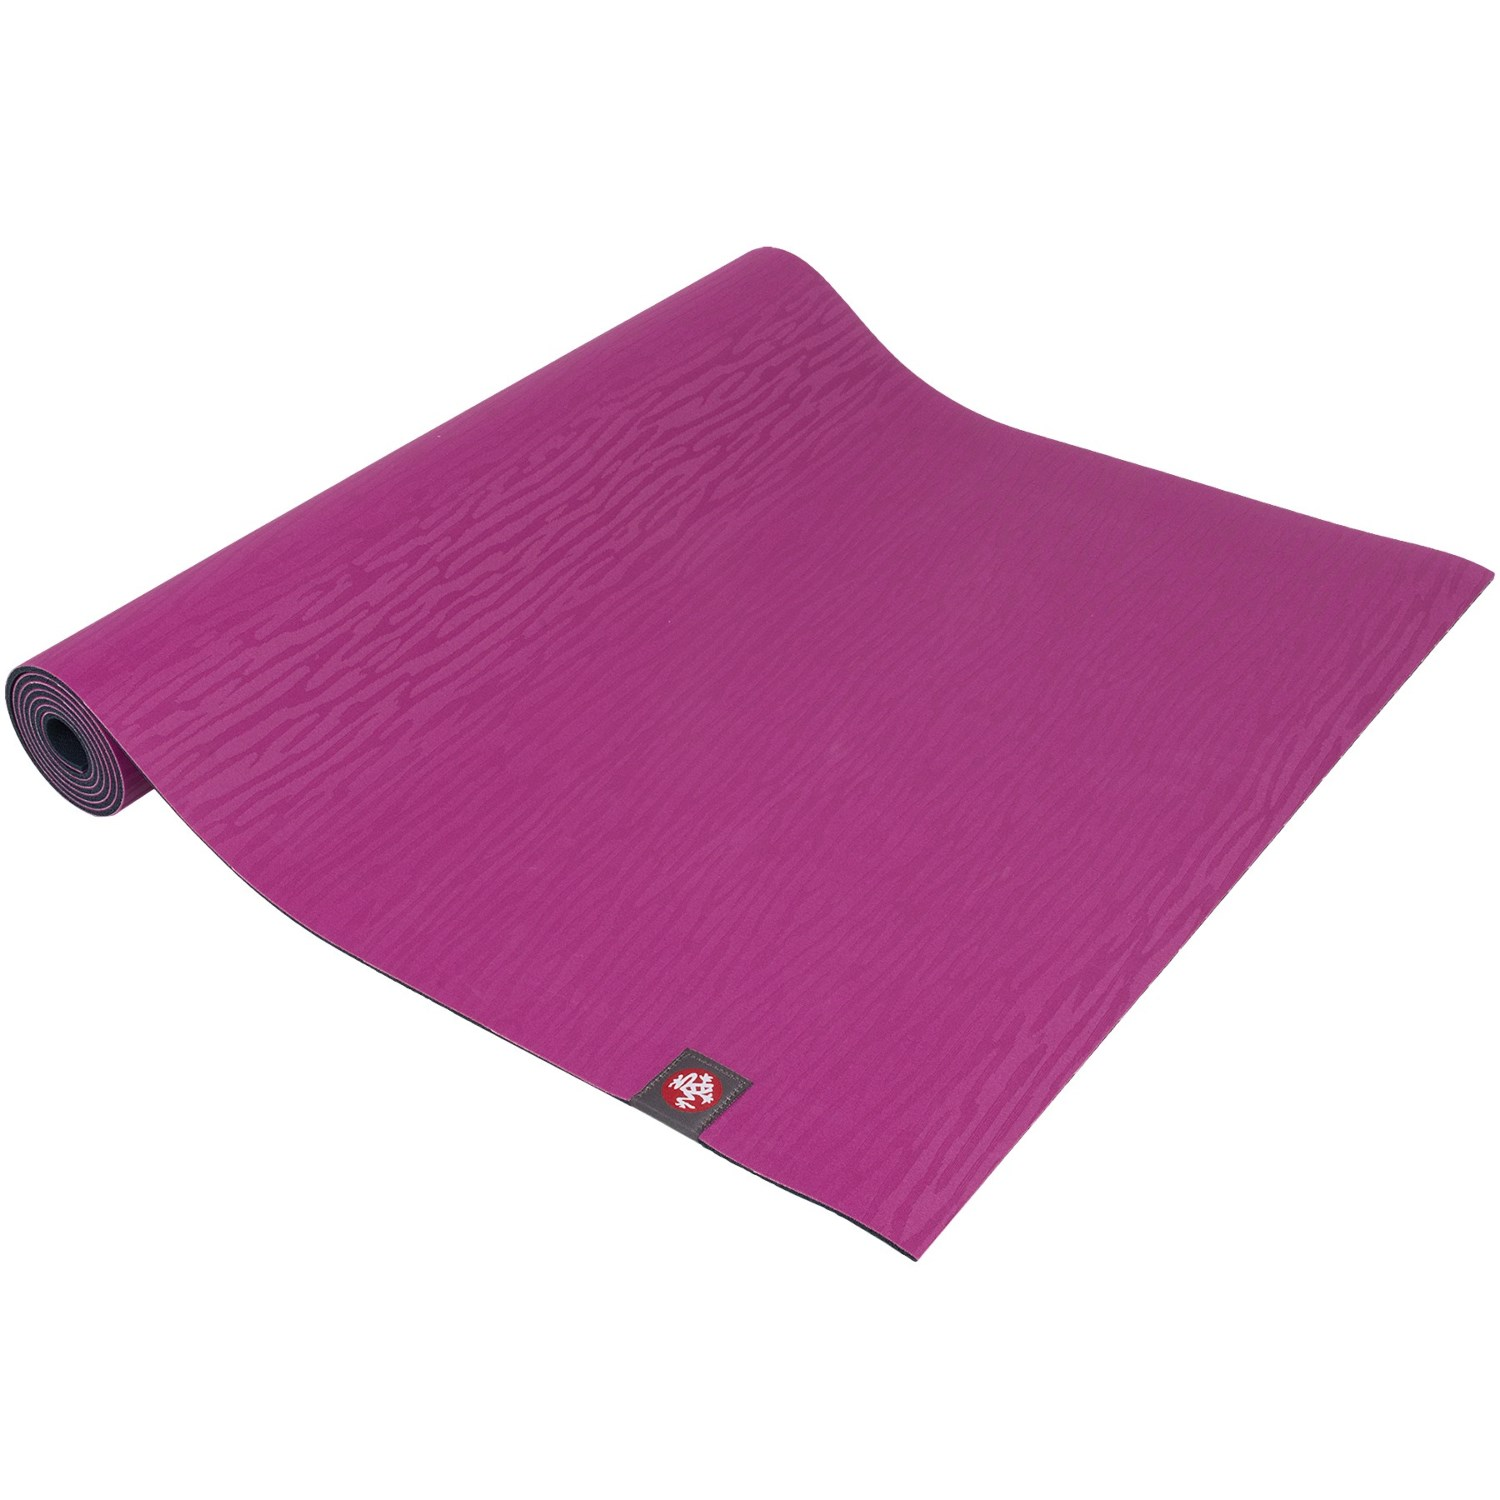 Manduka Eko Lite Yoga Mat 4mm 7311y Save 56